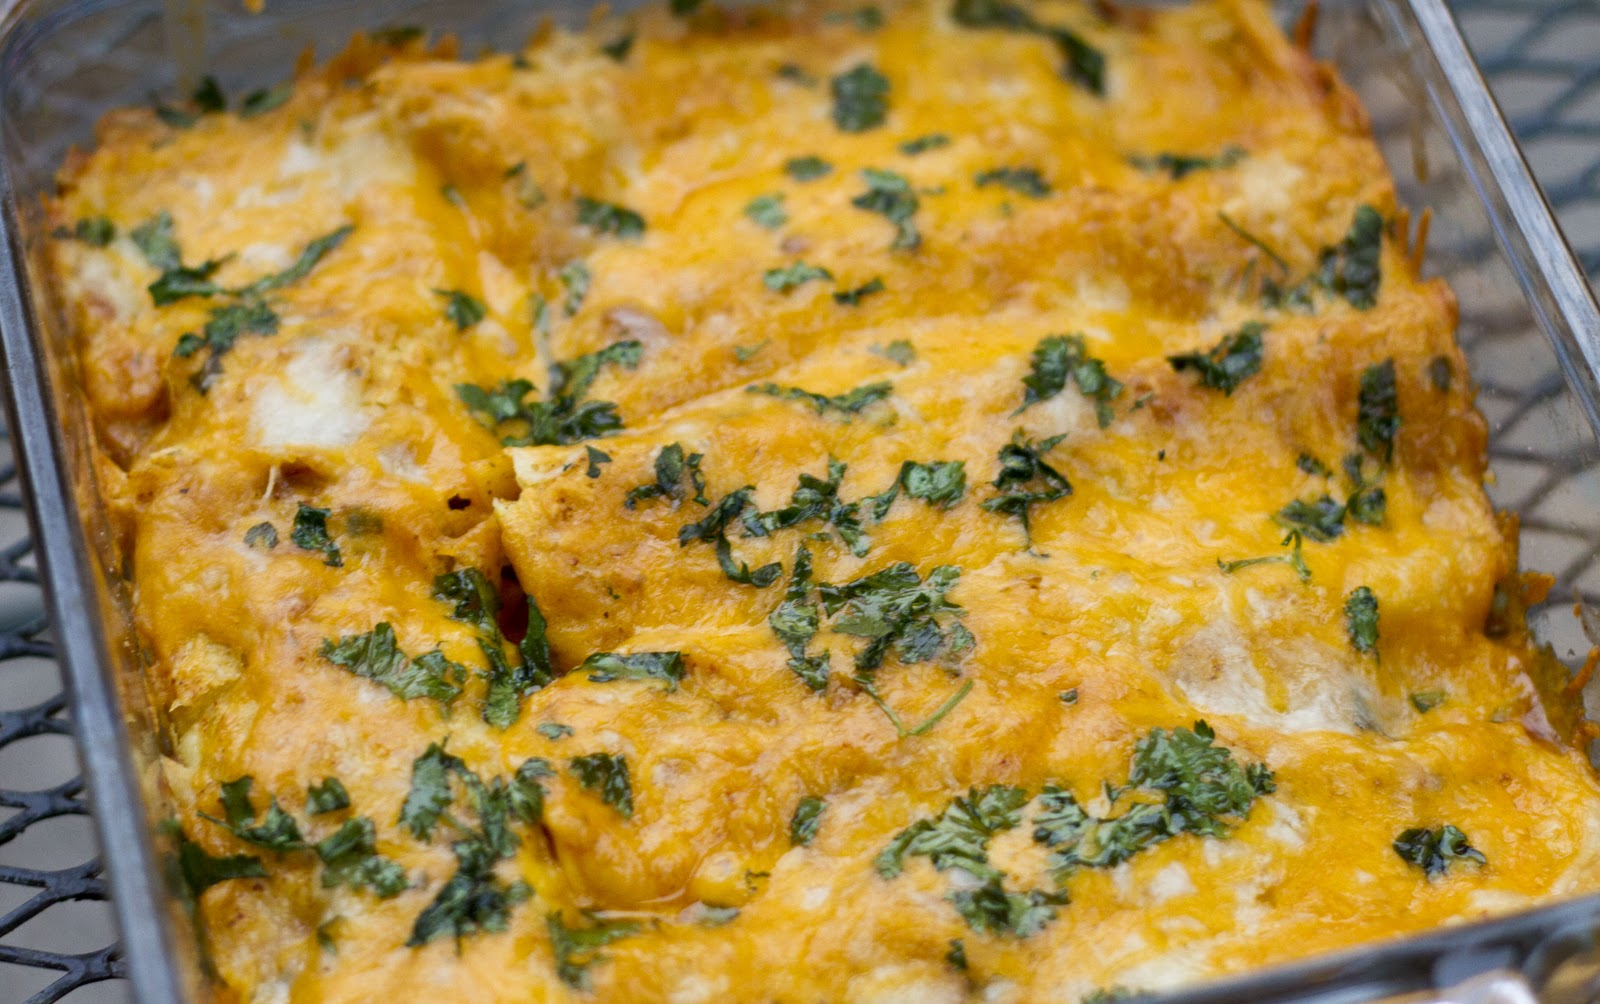 On My Menu: Tex-Mex Beef Enchiladas